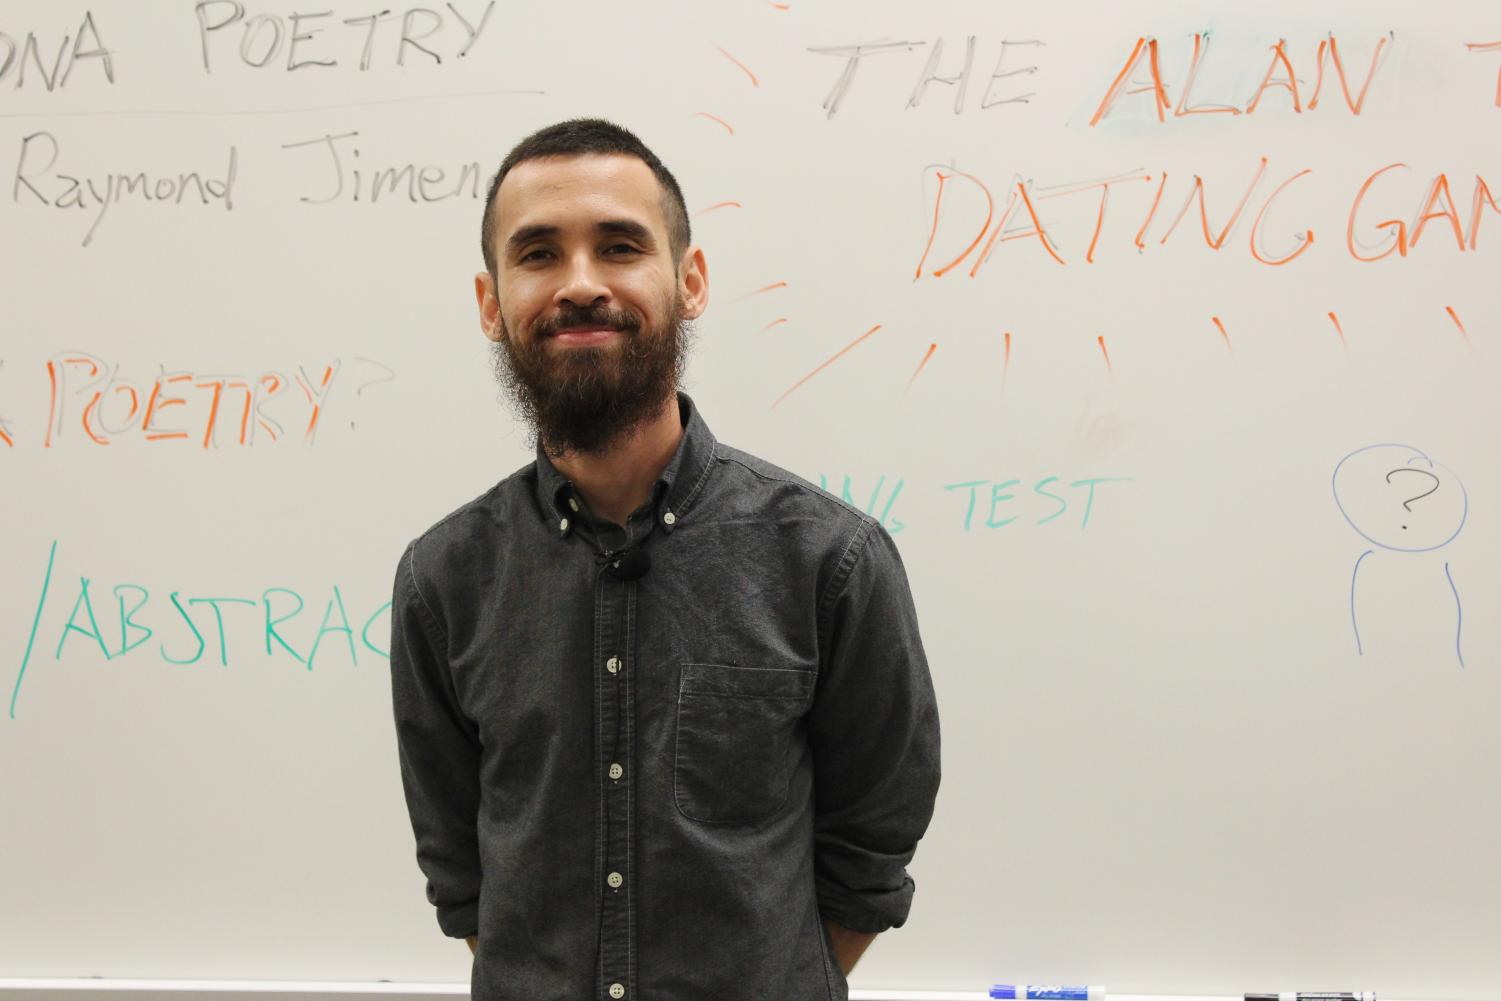 Raymond Jimenez uses the white board in Building 8, Room 101 to inform attendees about poetry.